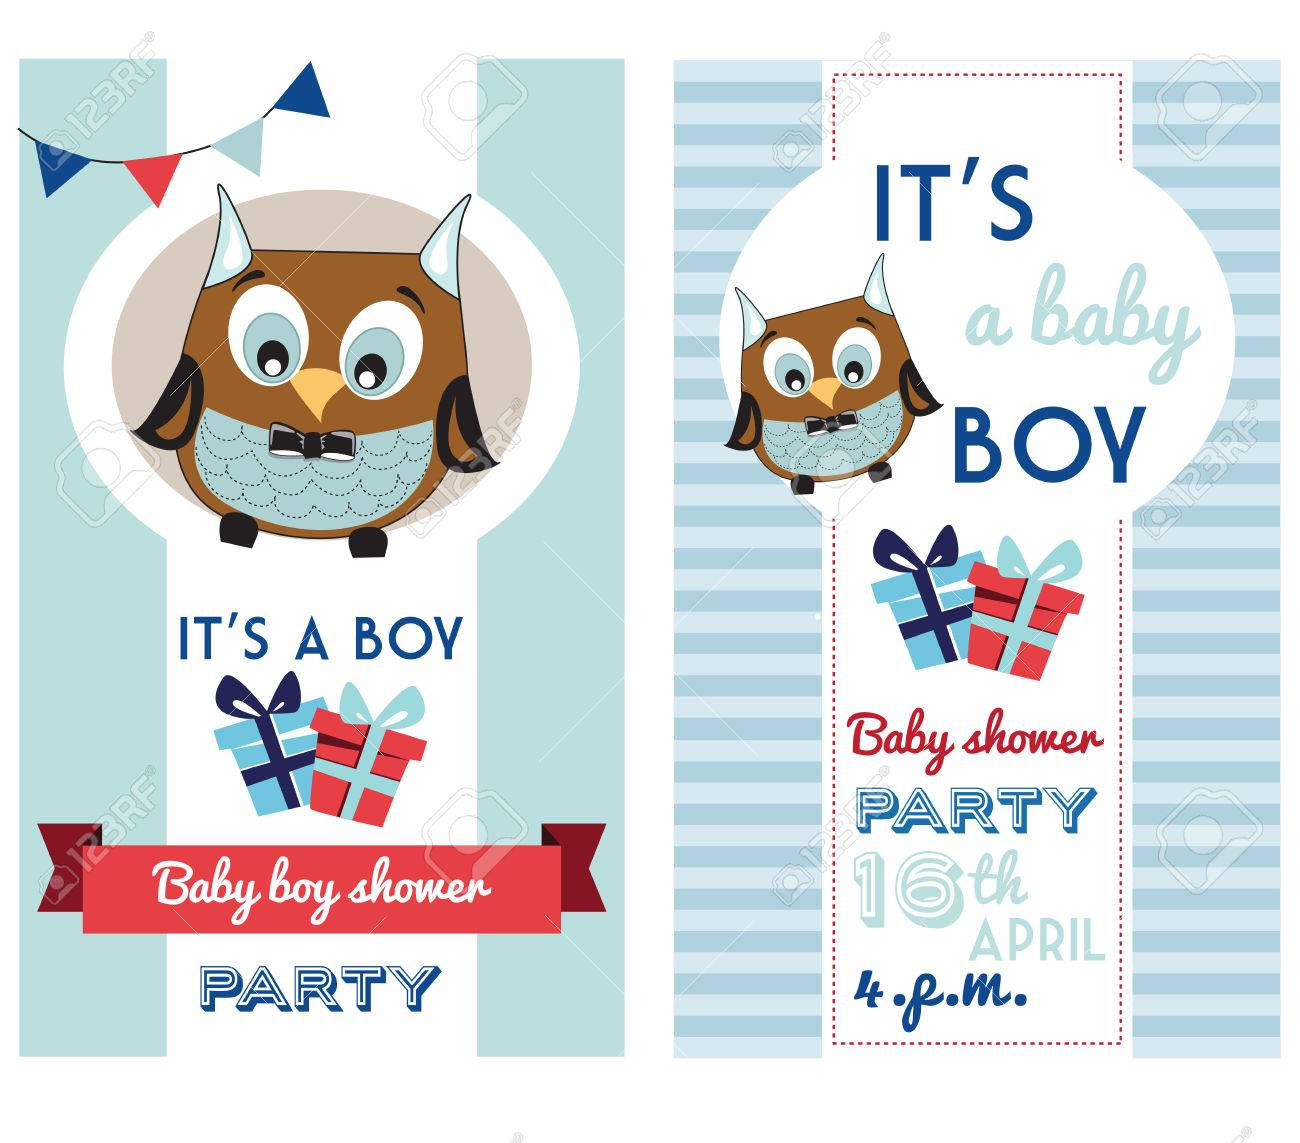 Baby Boy Shower Invitation Card Template With Cute Owl Royalty Free ...